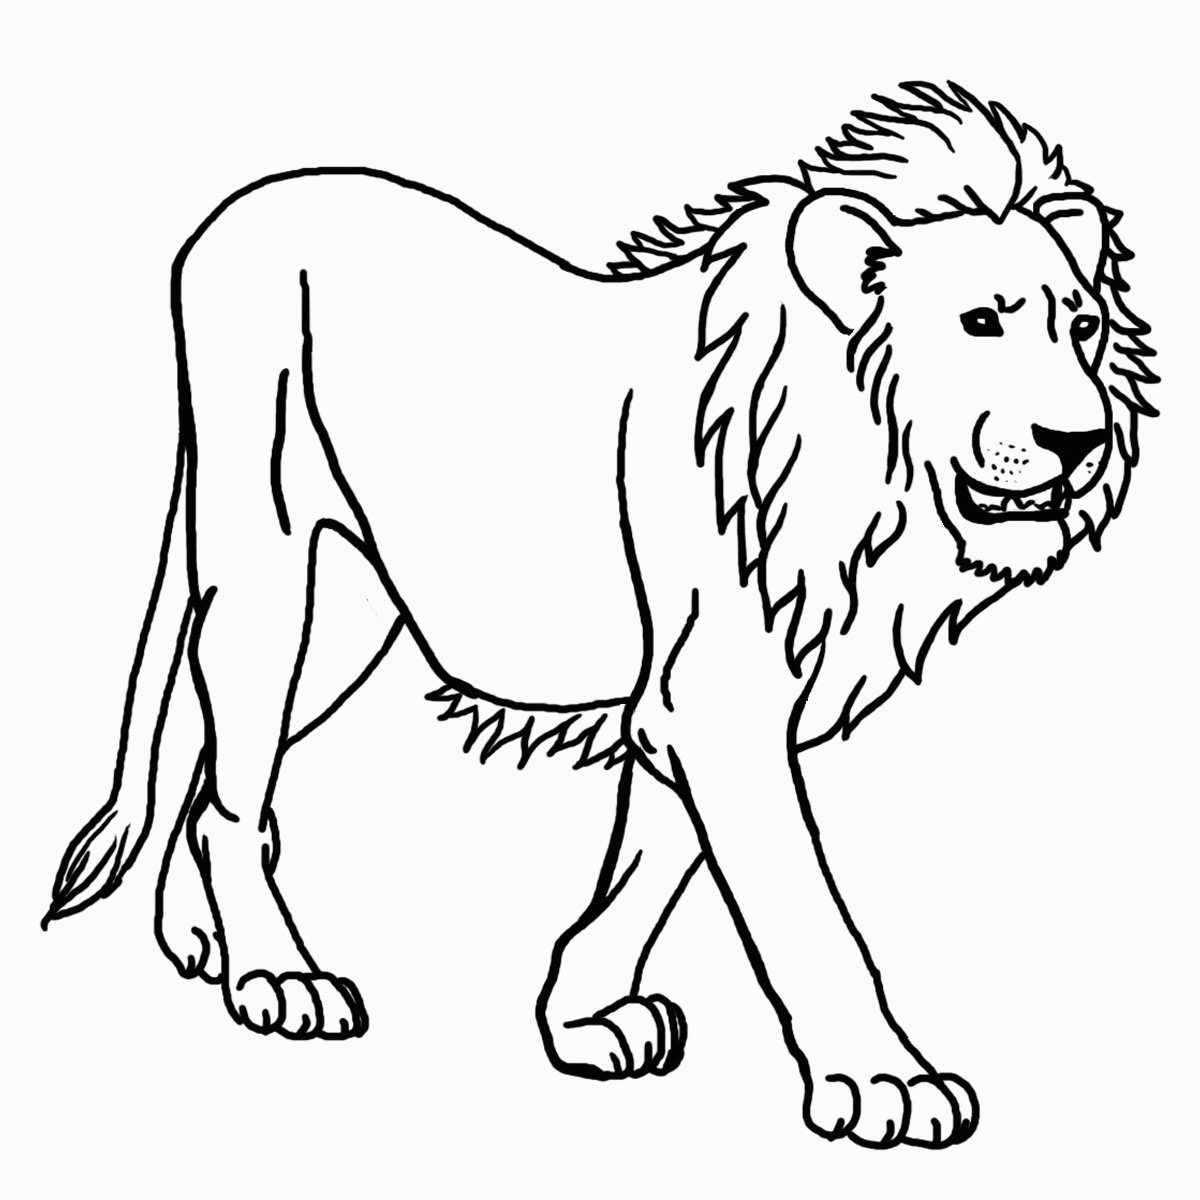 Free Printable Lion Coloring Pages For Kids For Lion Coloring Sheet - Free Printable Picture Of A Lion